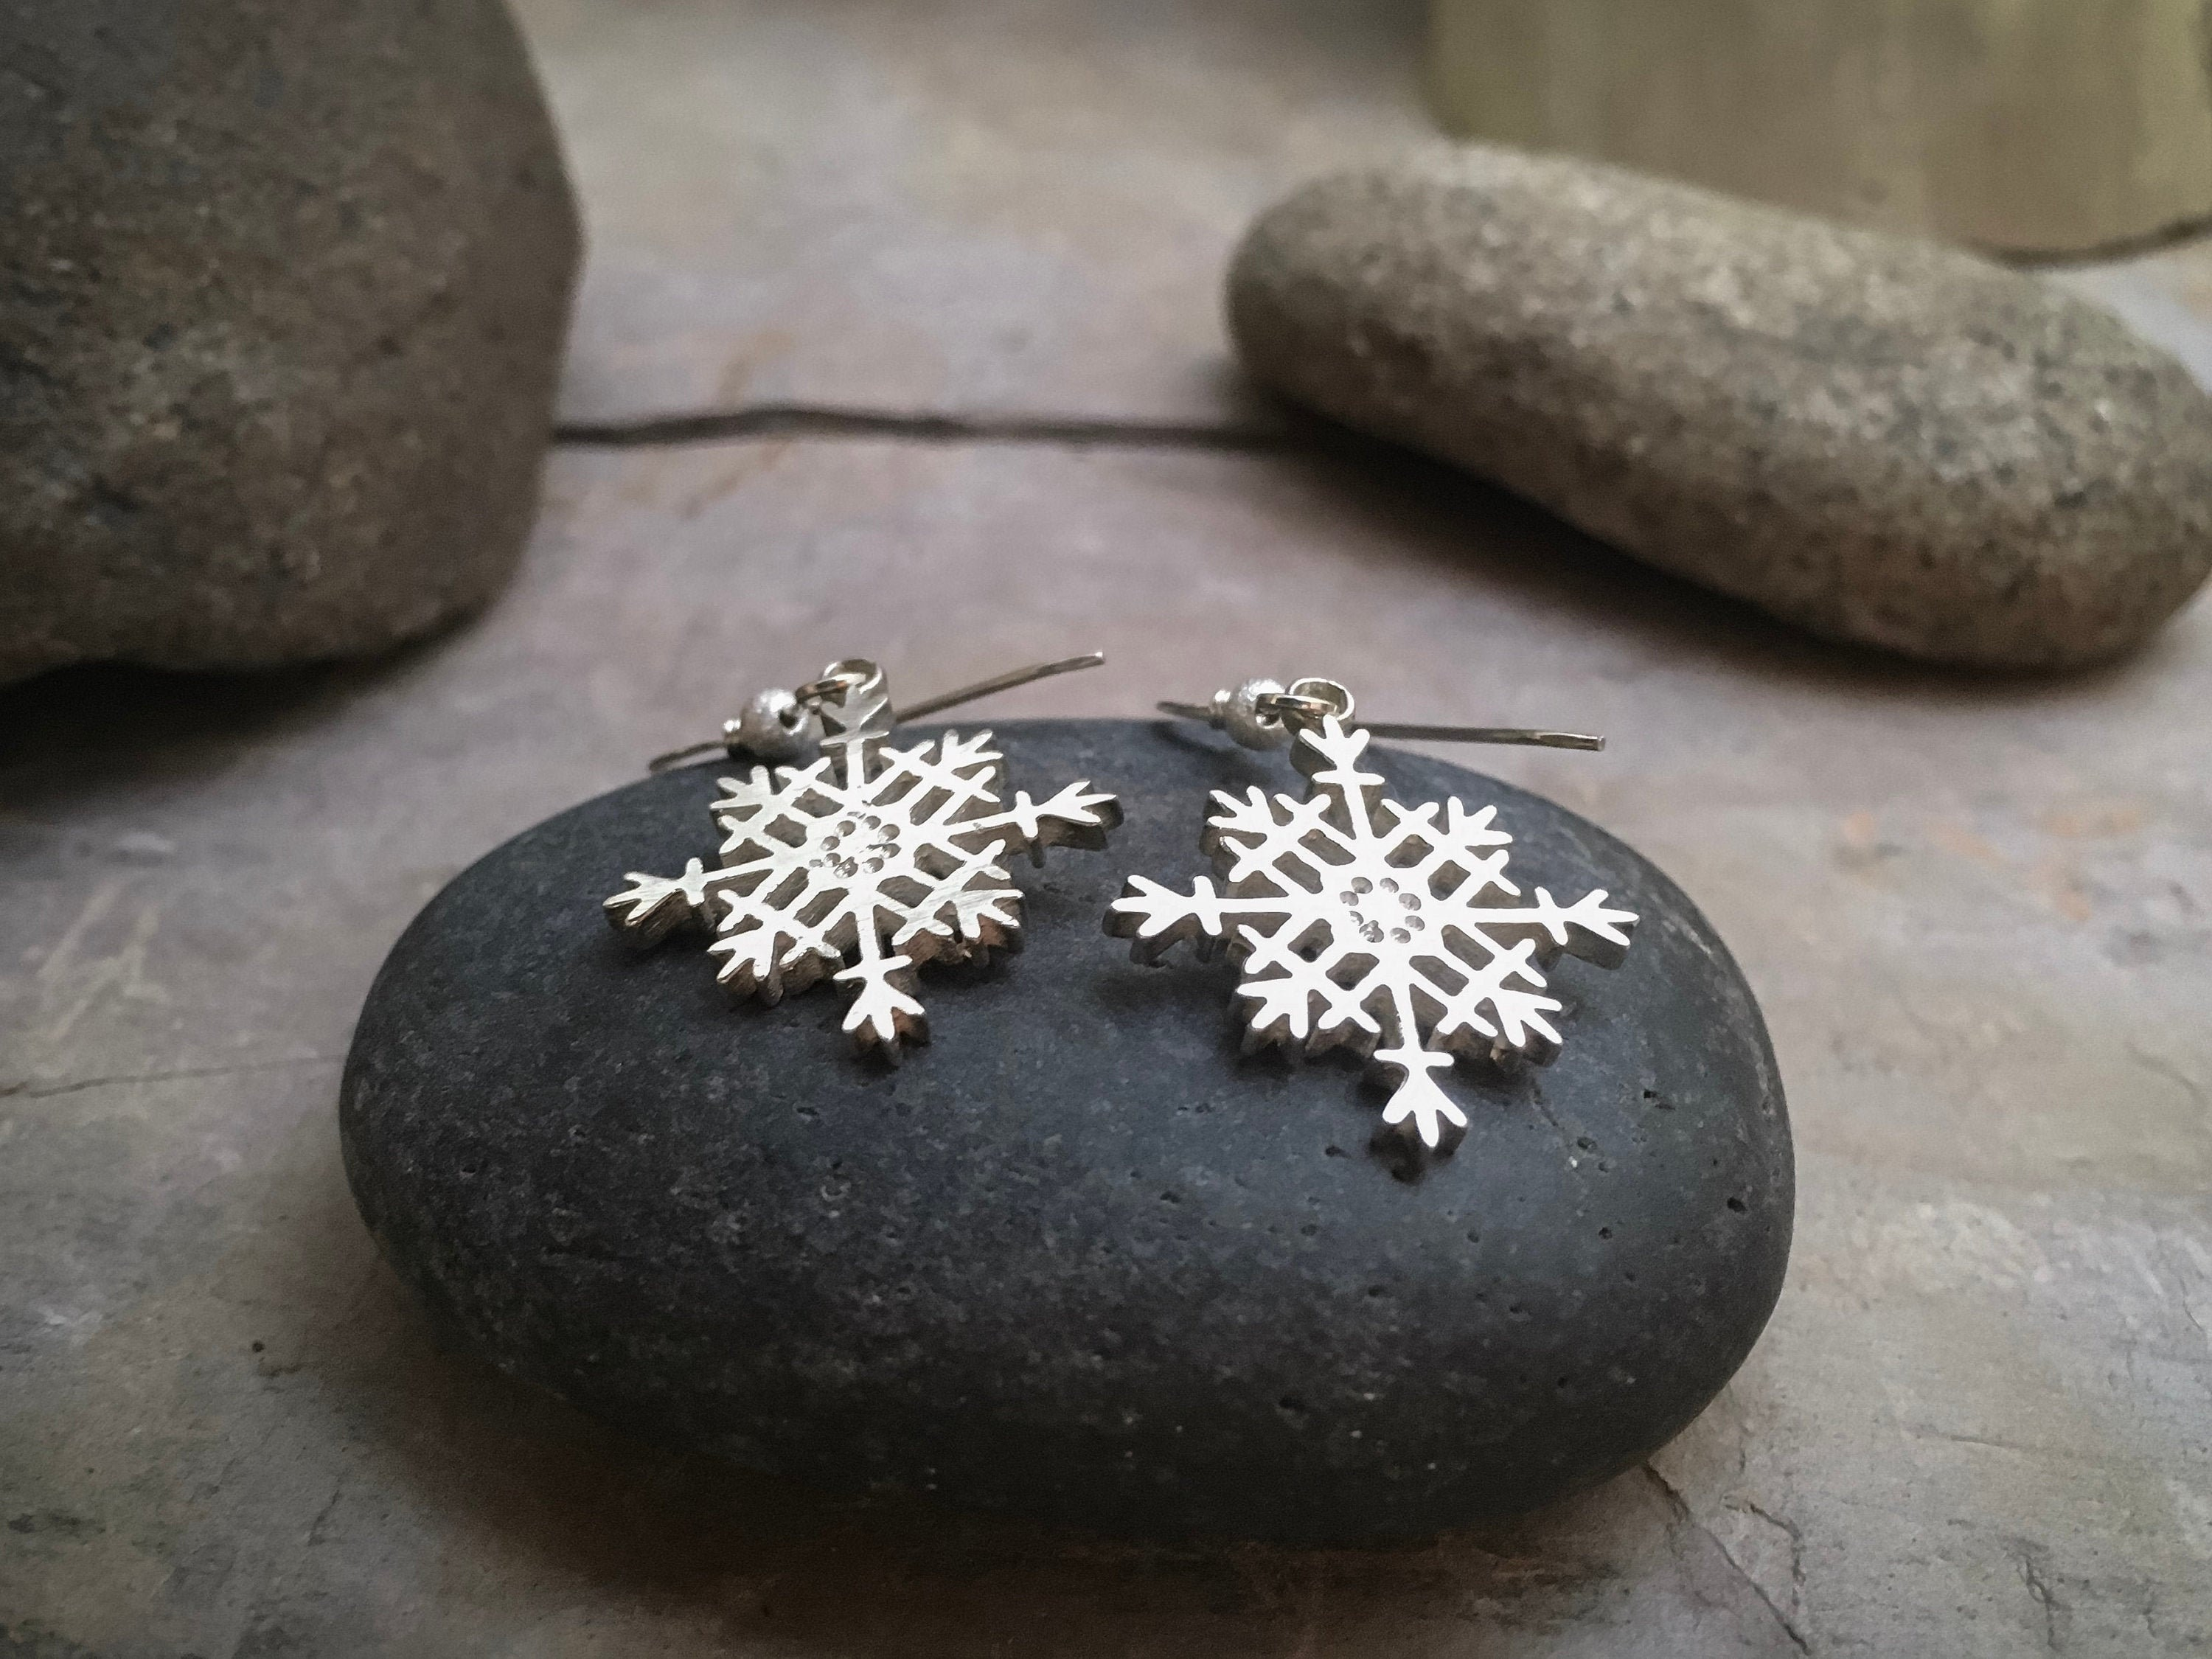 Snowflake Earrings in solid Sterling Silver - Jewelry for anniversary gift, gift for mom, birthday gift, wife gift or gift for girlfriend!